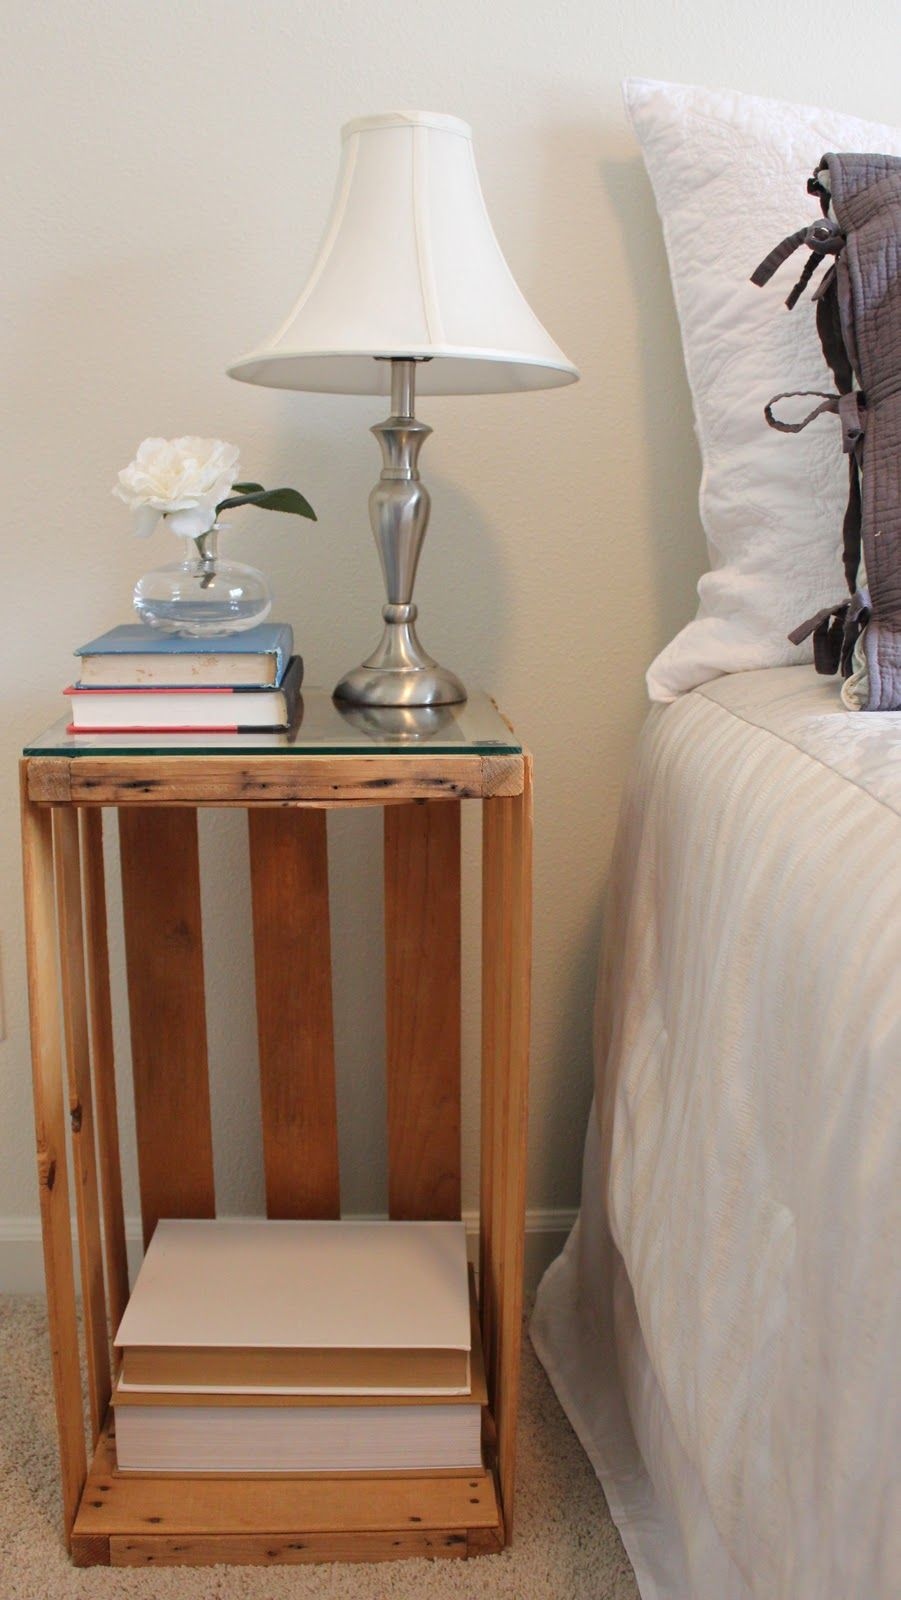 DIY Fruit Crate turned Night Stand